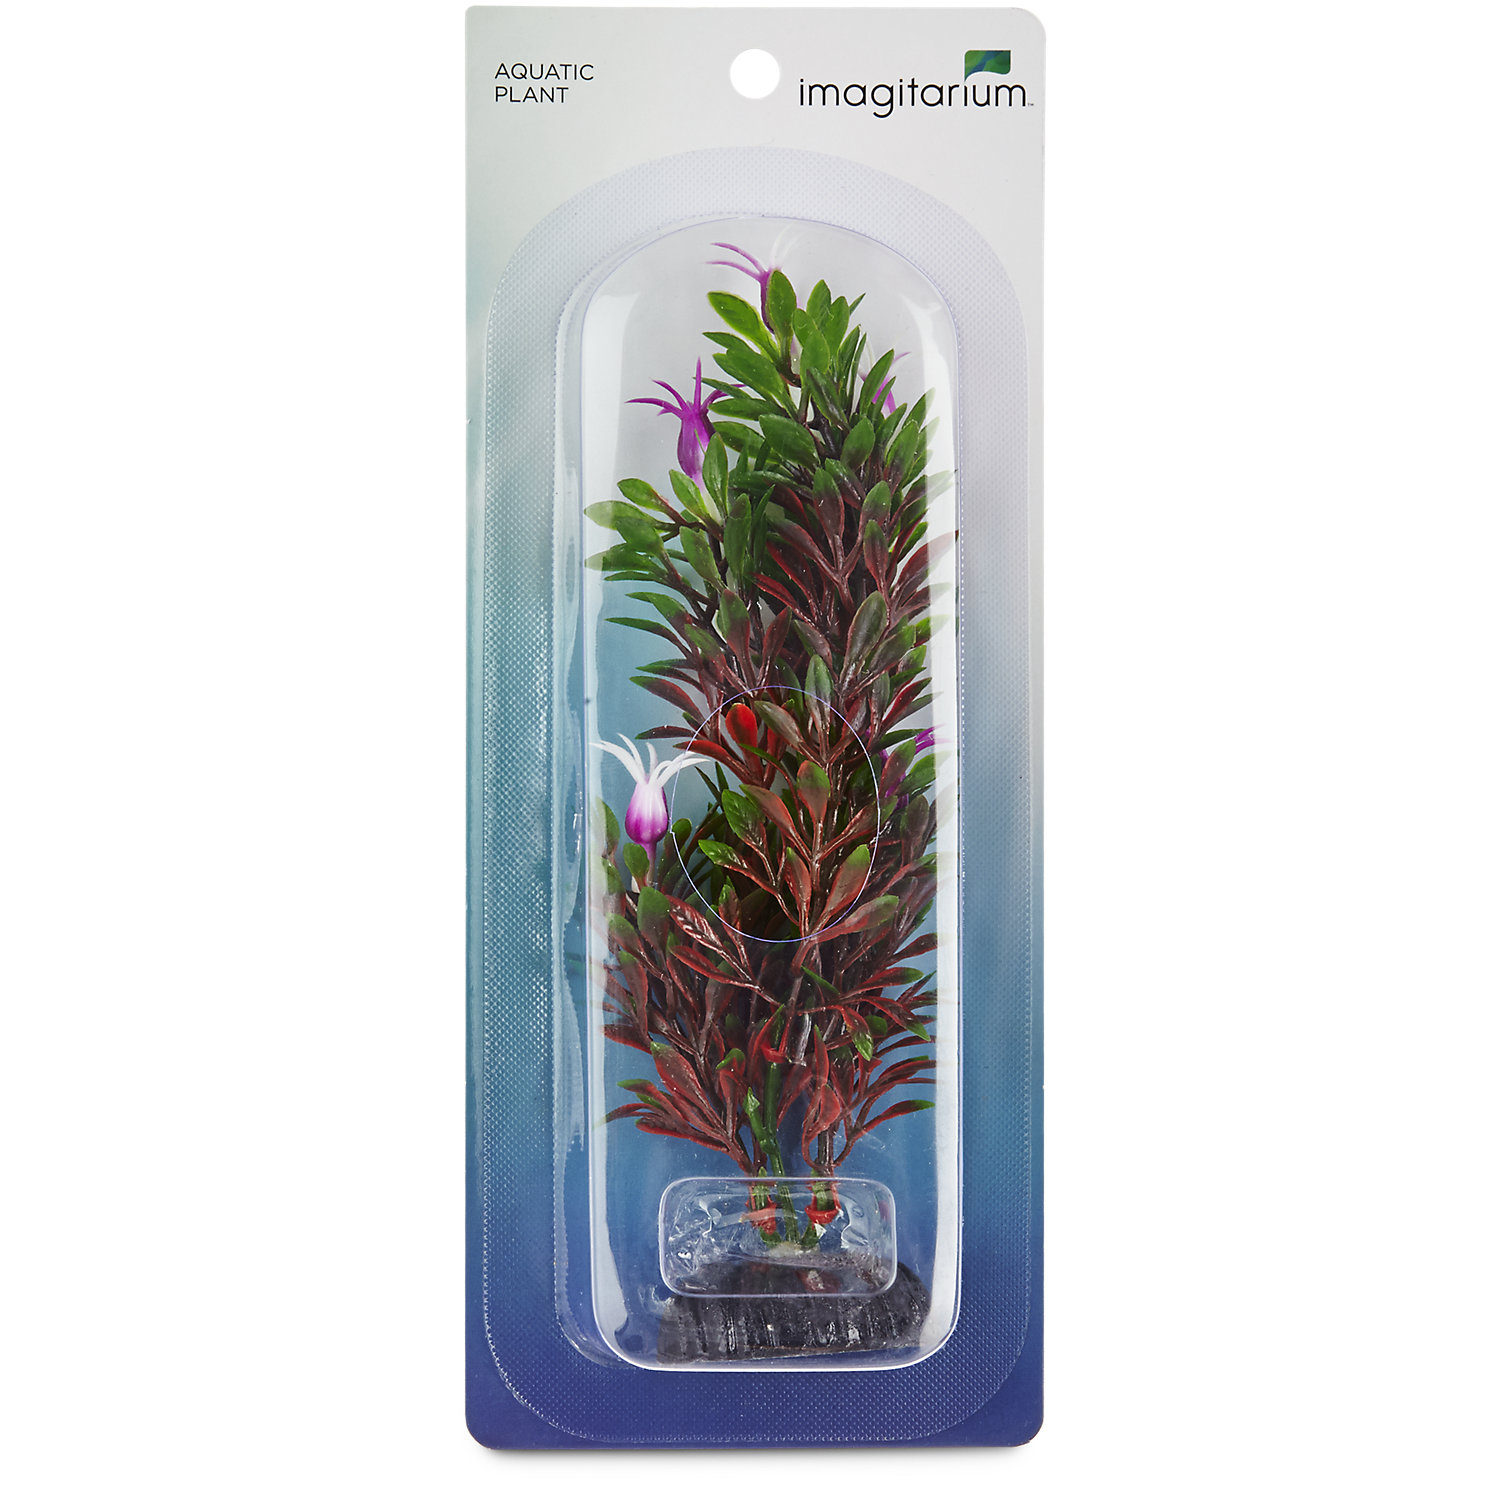 Upc 800443156032 imagitarium small pearl plant aquatic for Aquatic decoration